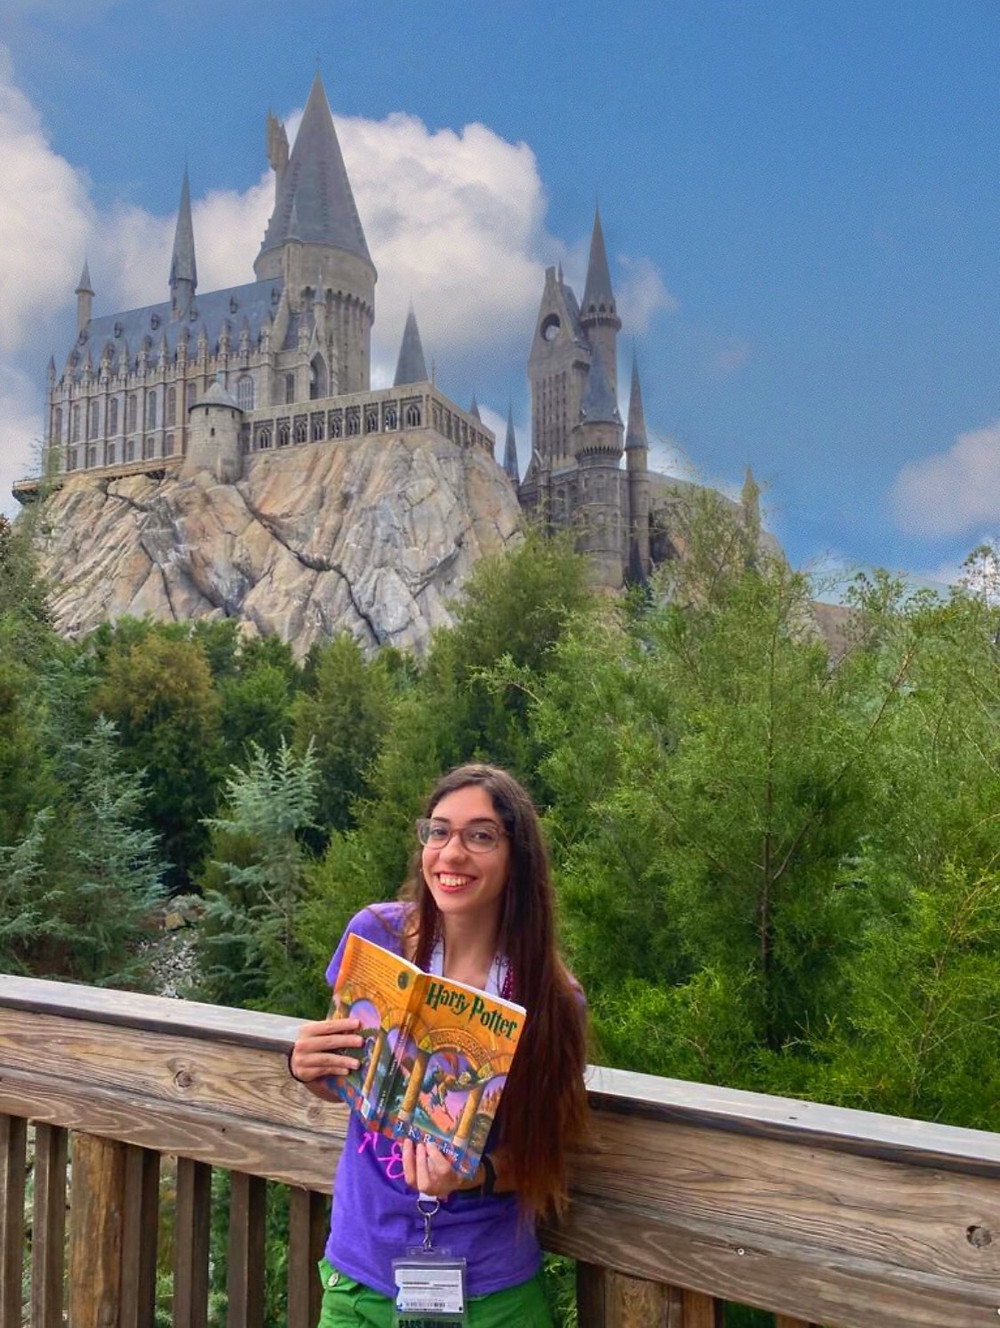 Castelo de Hogwarts de Harry Potter